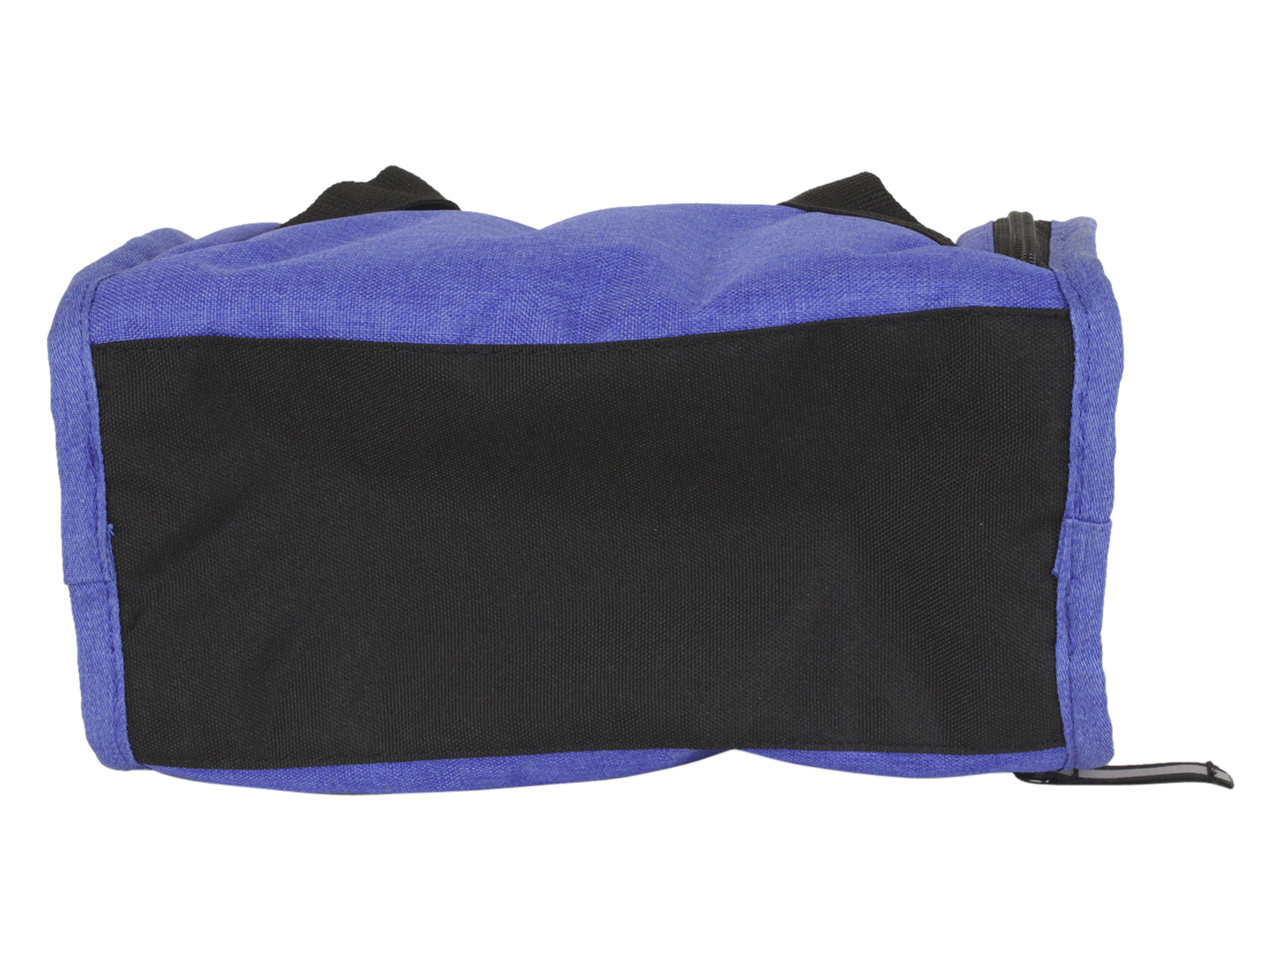 Nike-Deluxe-Insulated-Tote-Lunch-Bag thumbnail 22